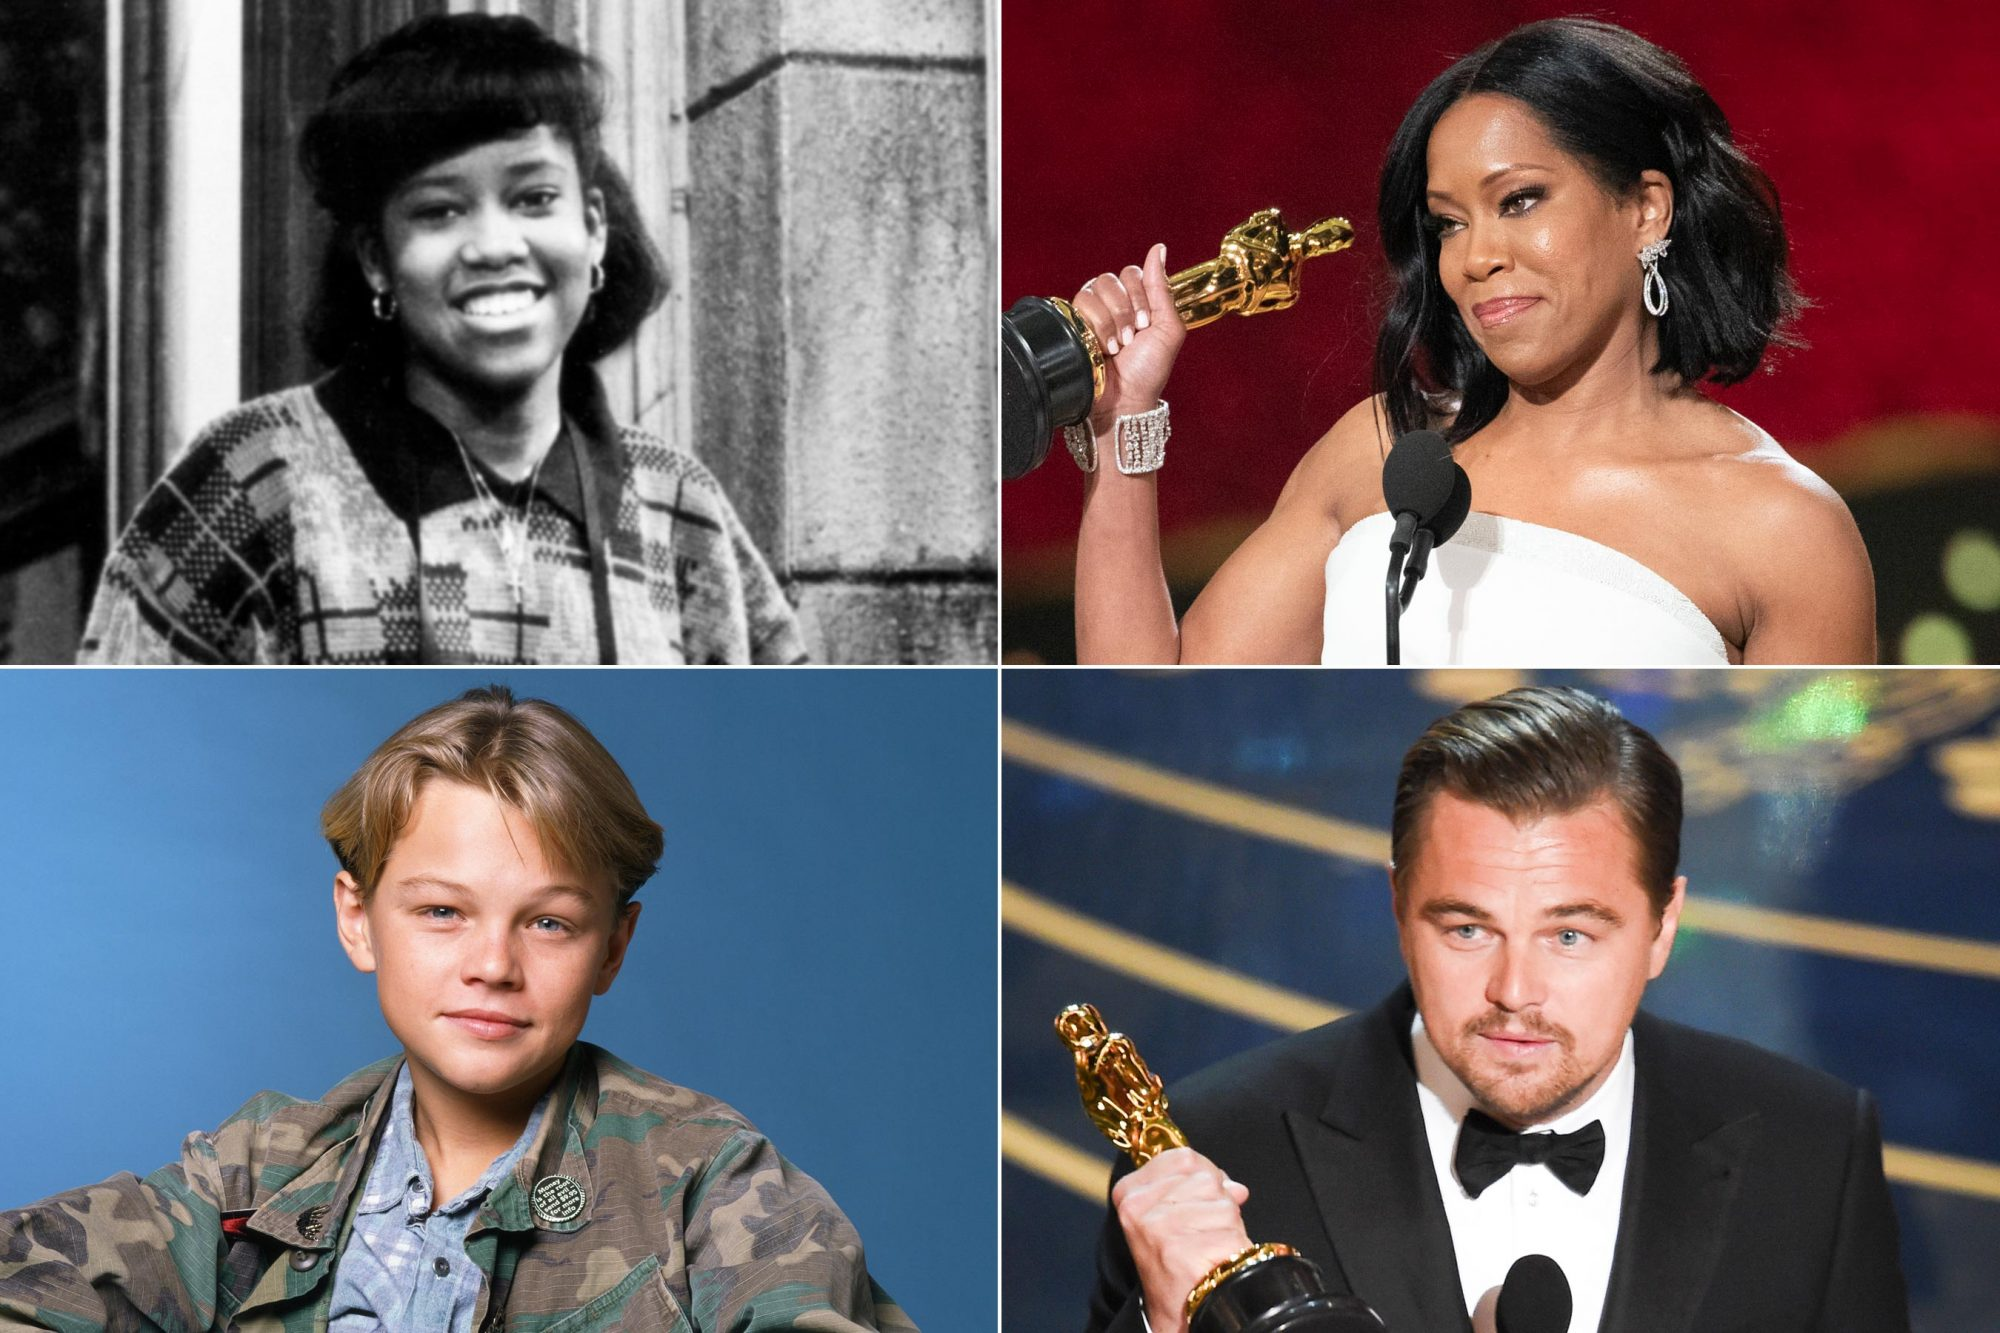 Oscar dreams that started small for these stars